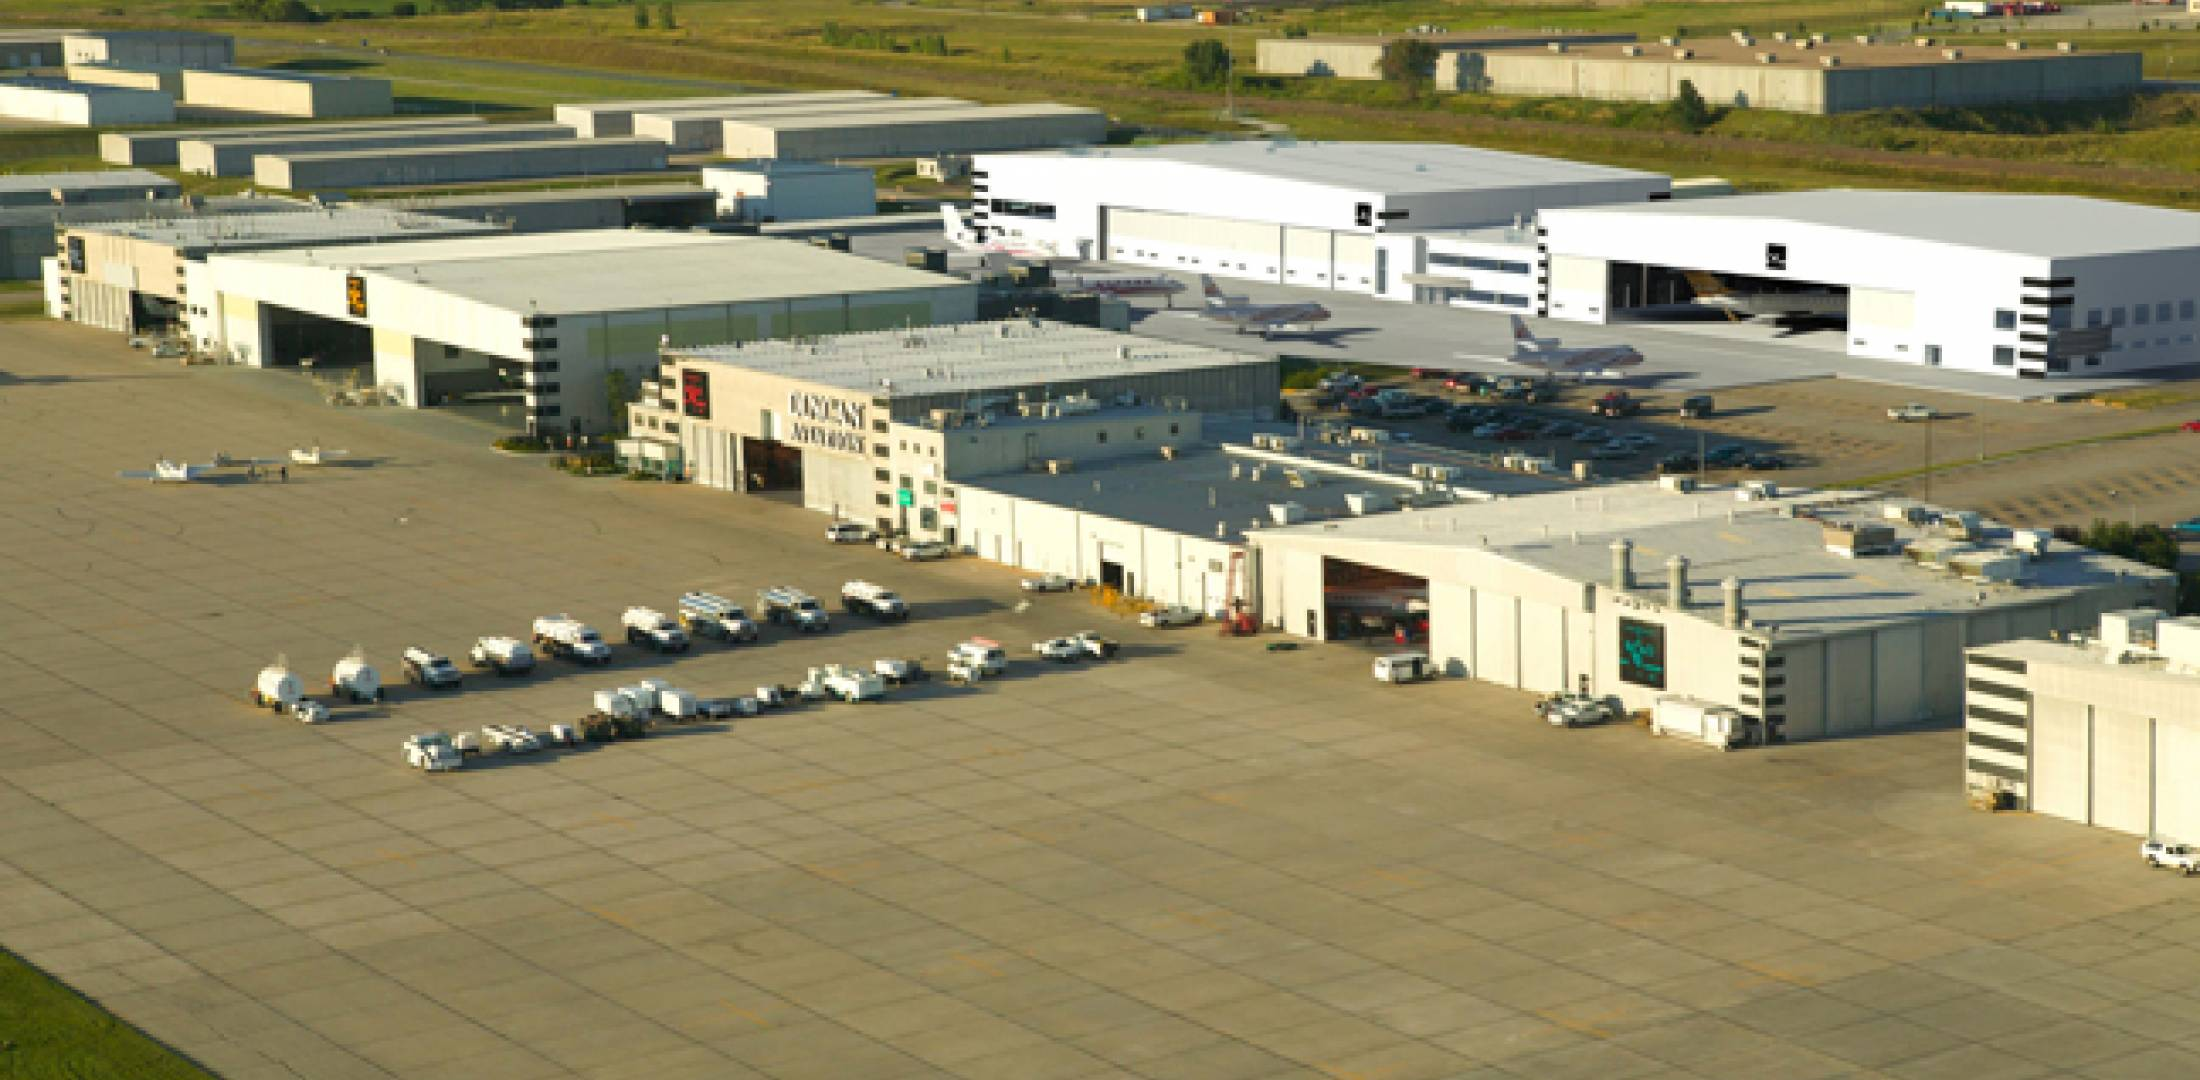 This artist's rendering depicts Duncan Aviation's planned MRO facility at Lincoln.